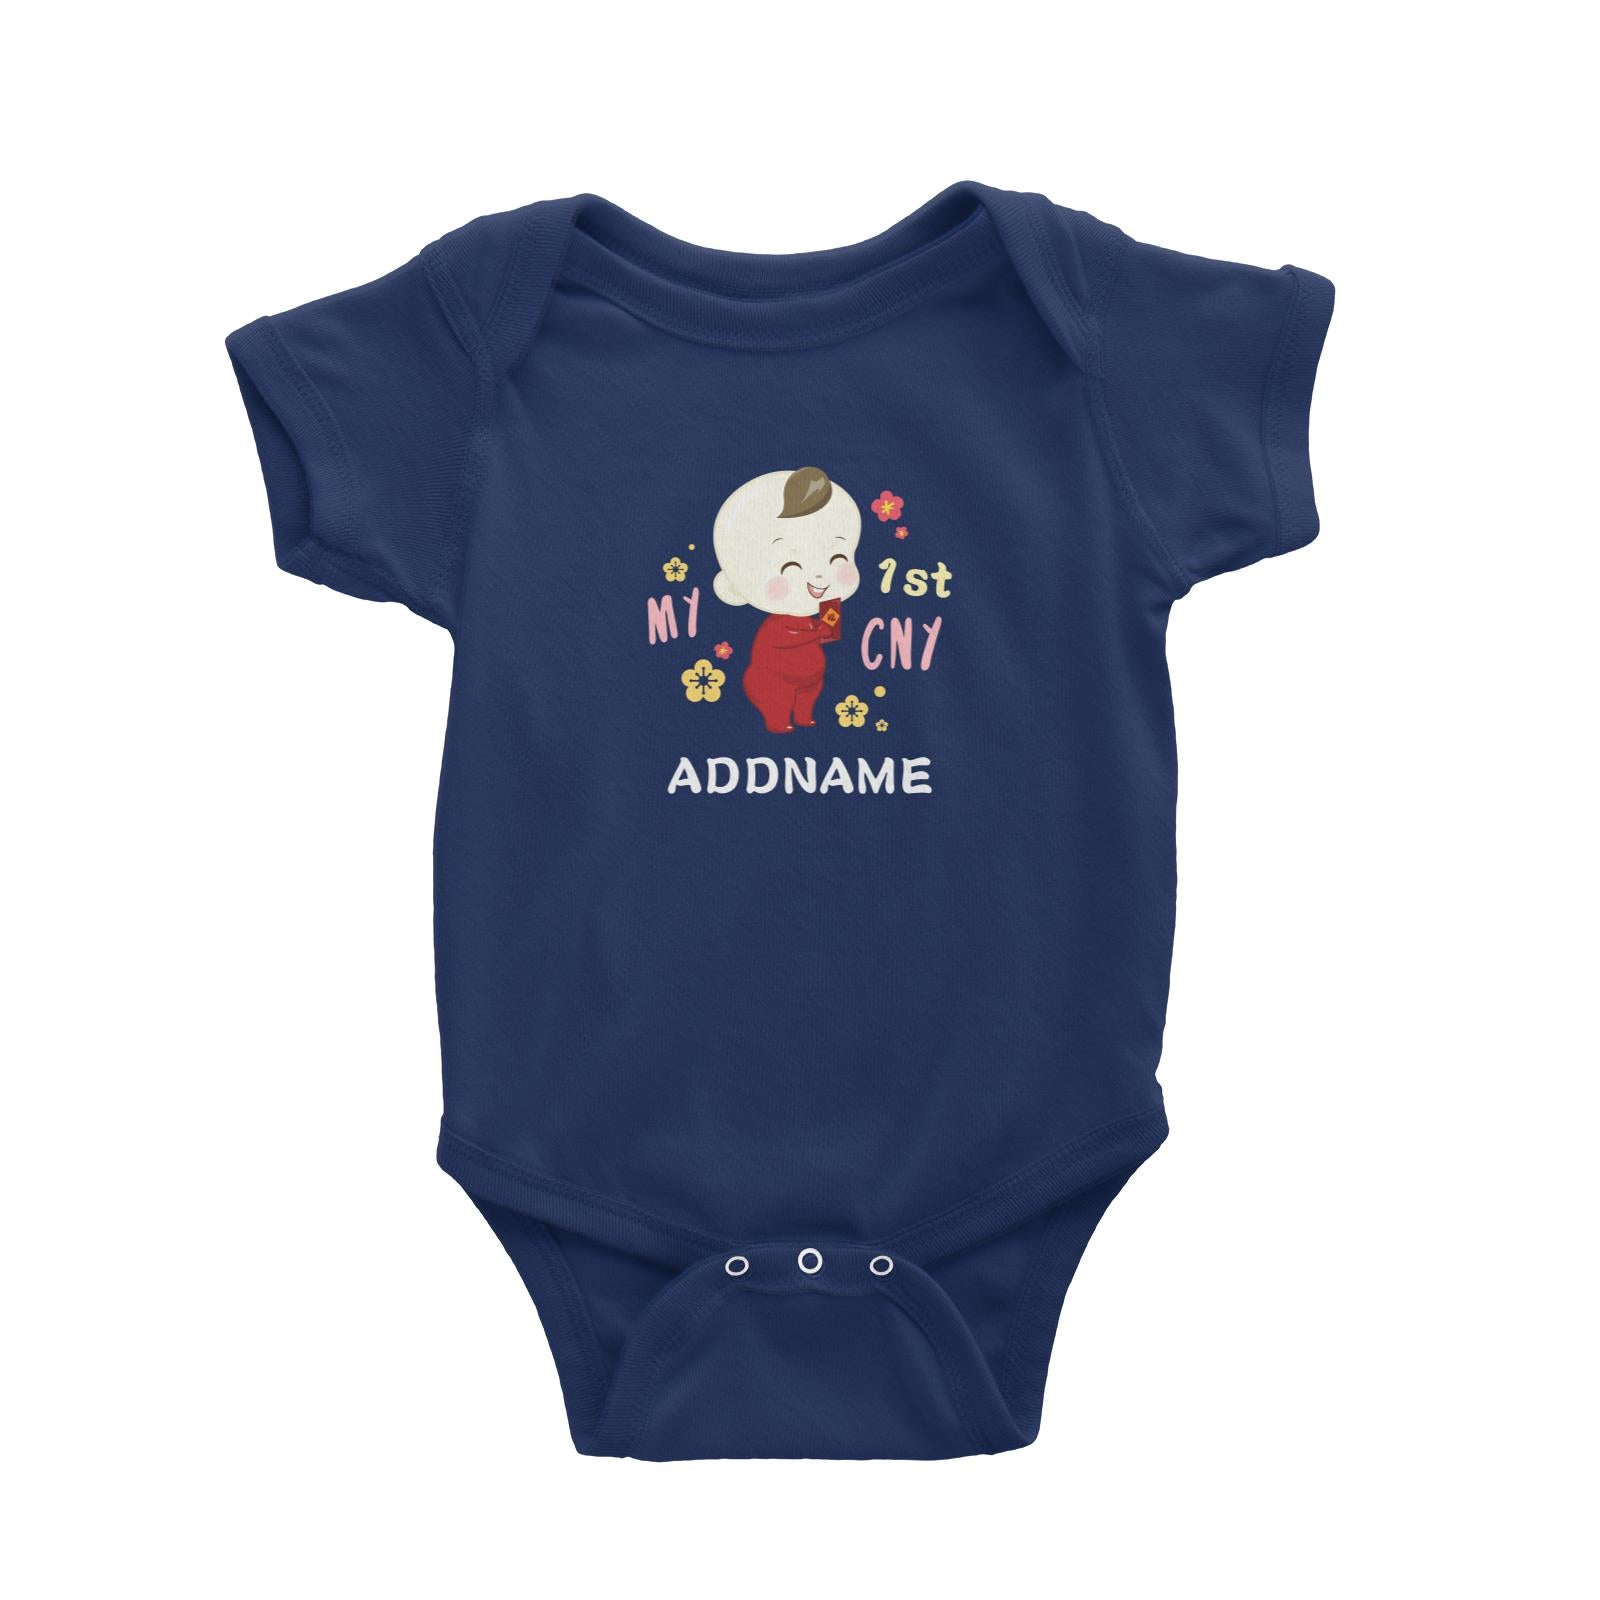 Chinese New Year Family My 1st CNY Baby Boy Addname Baby Romper